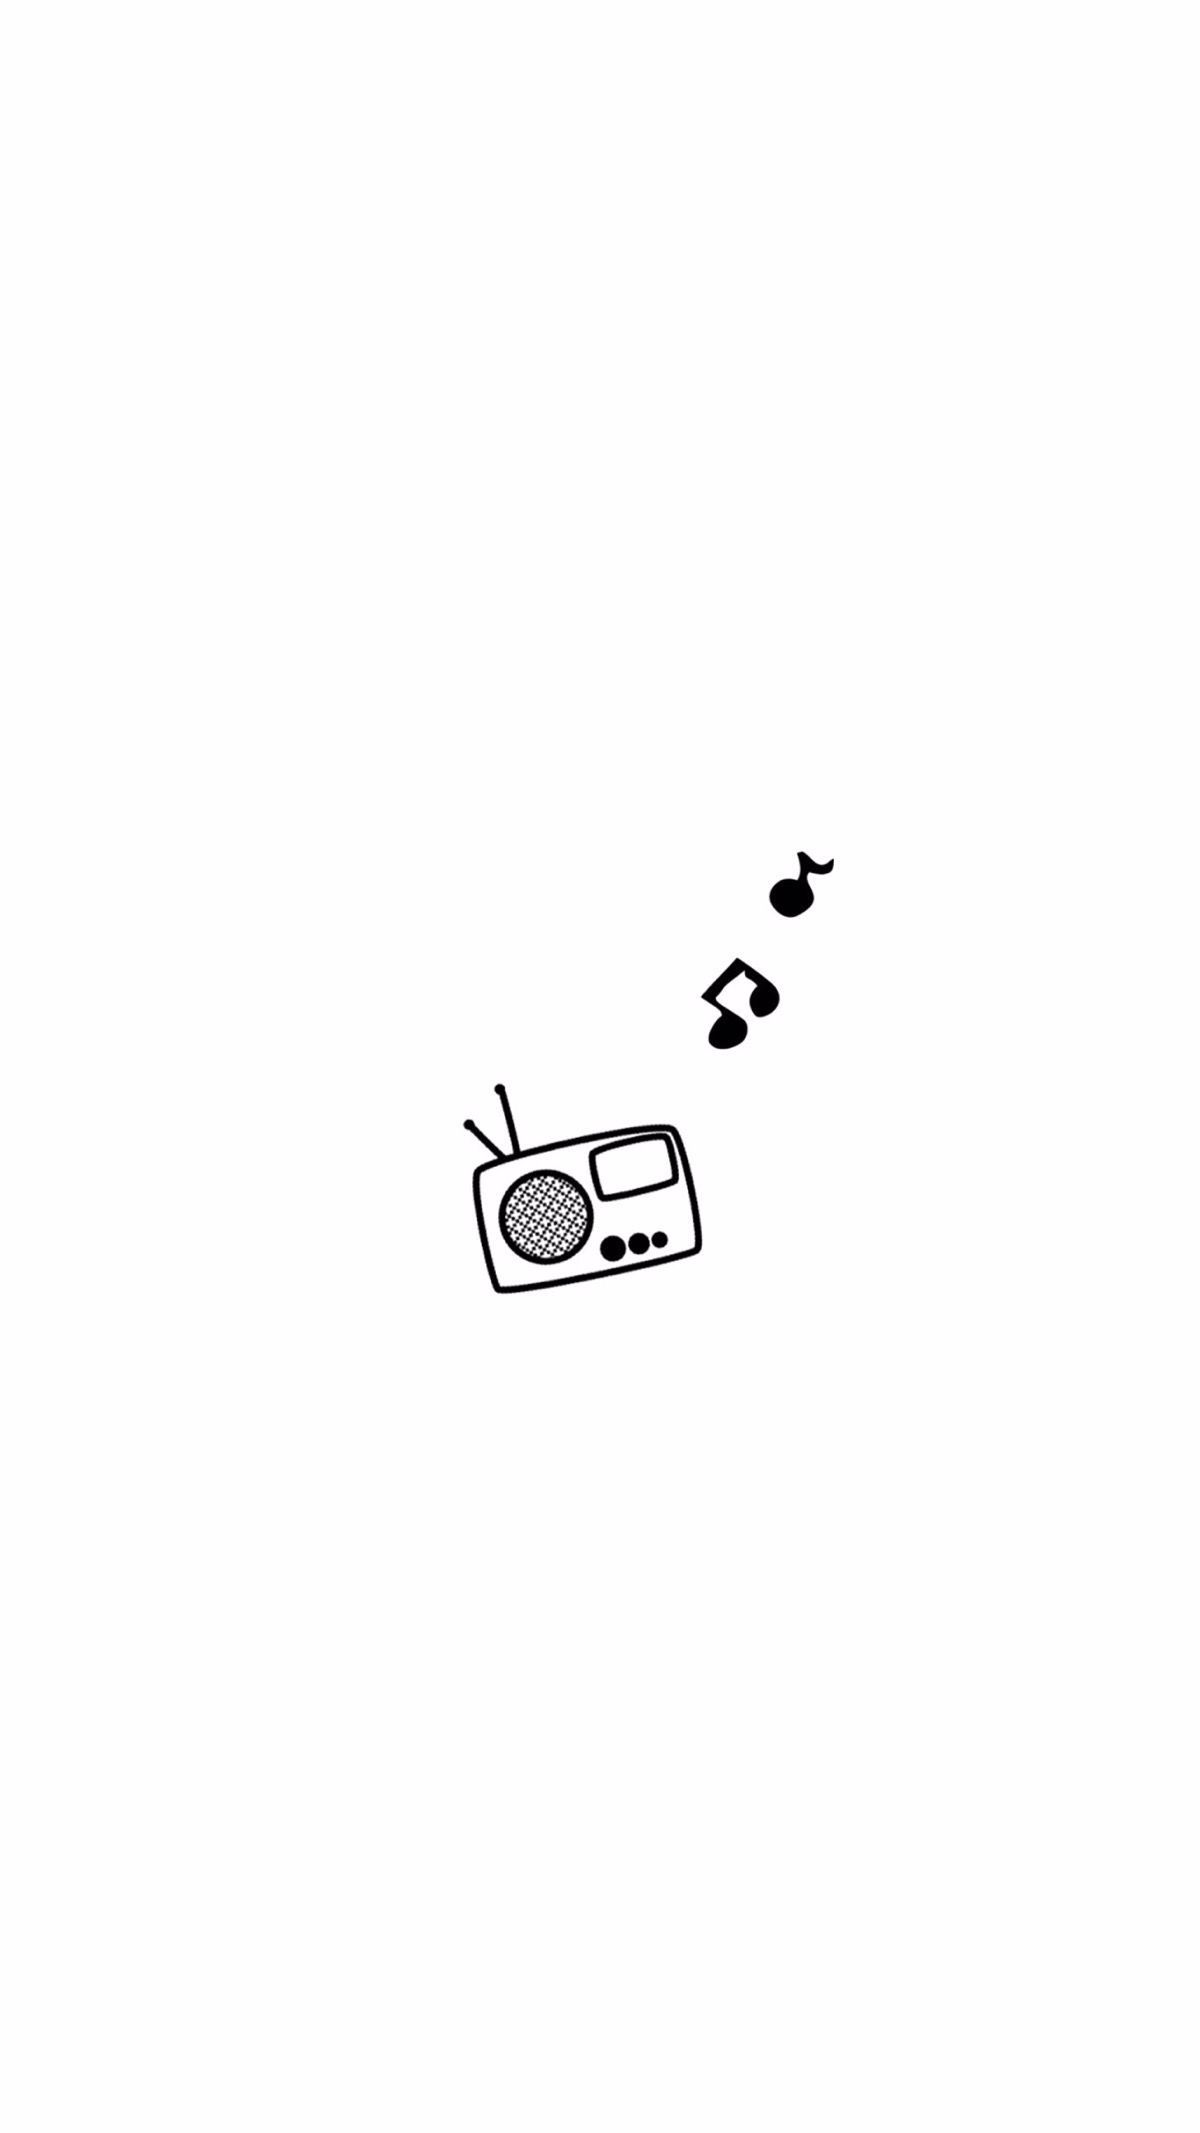 Pin By Angga Dwipayana On 90 In 2020 Cute Little Drawings Instagram Highlight Icons Minimalist Drawing